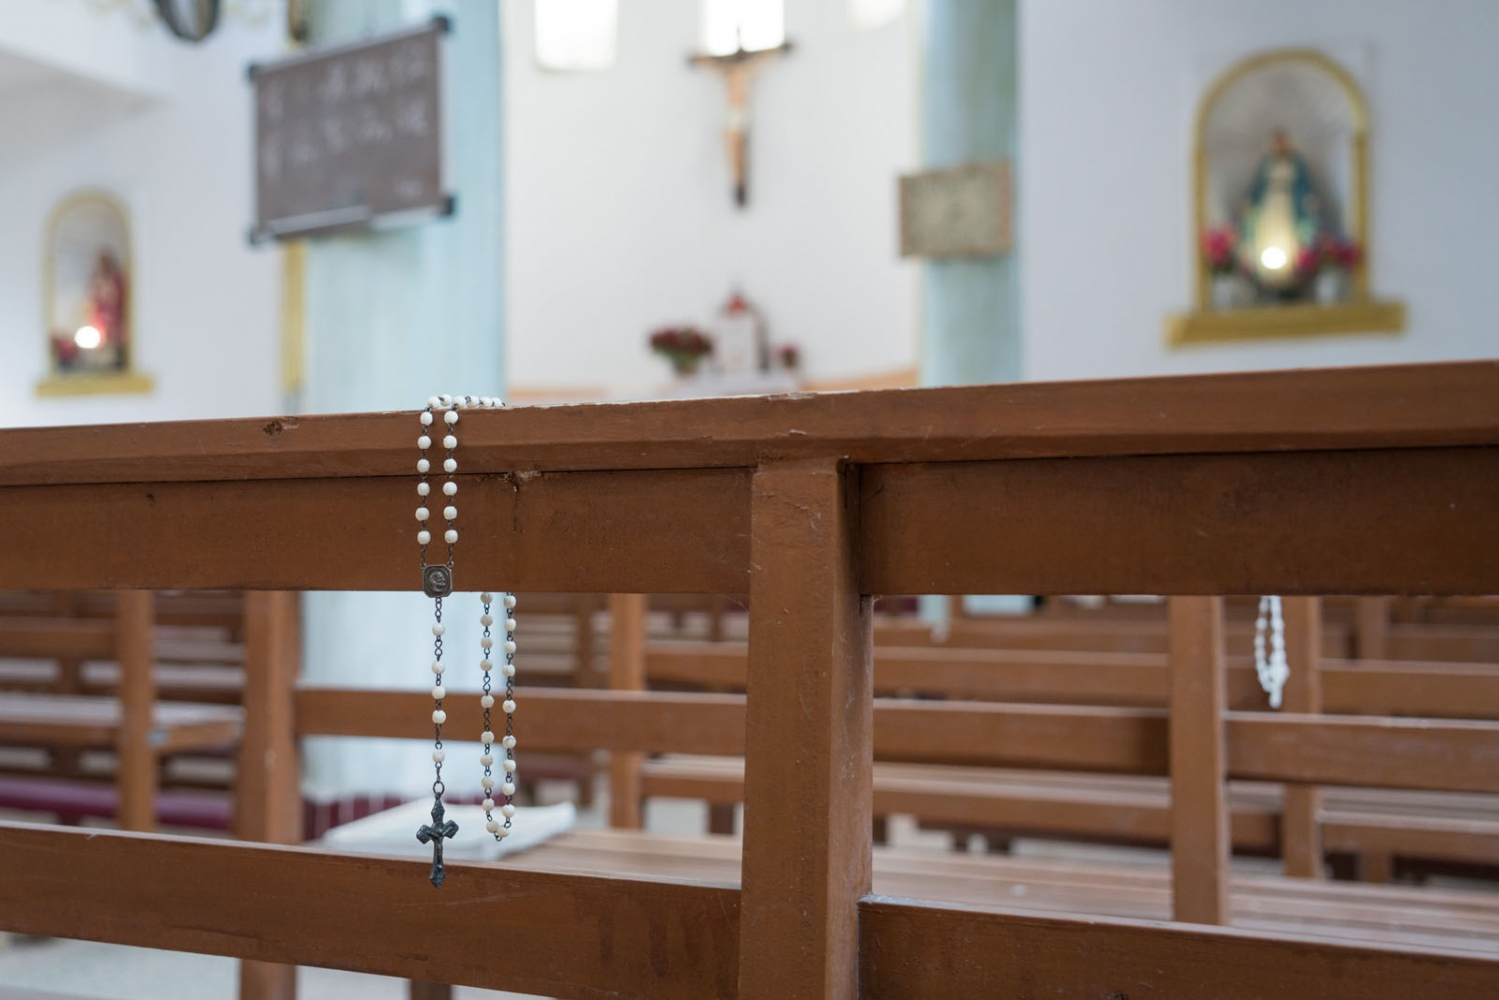 Rosary beads left on the bench in Luotianba Church, in Guangdong province, China, on March 4, 2018.